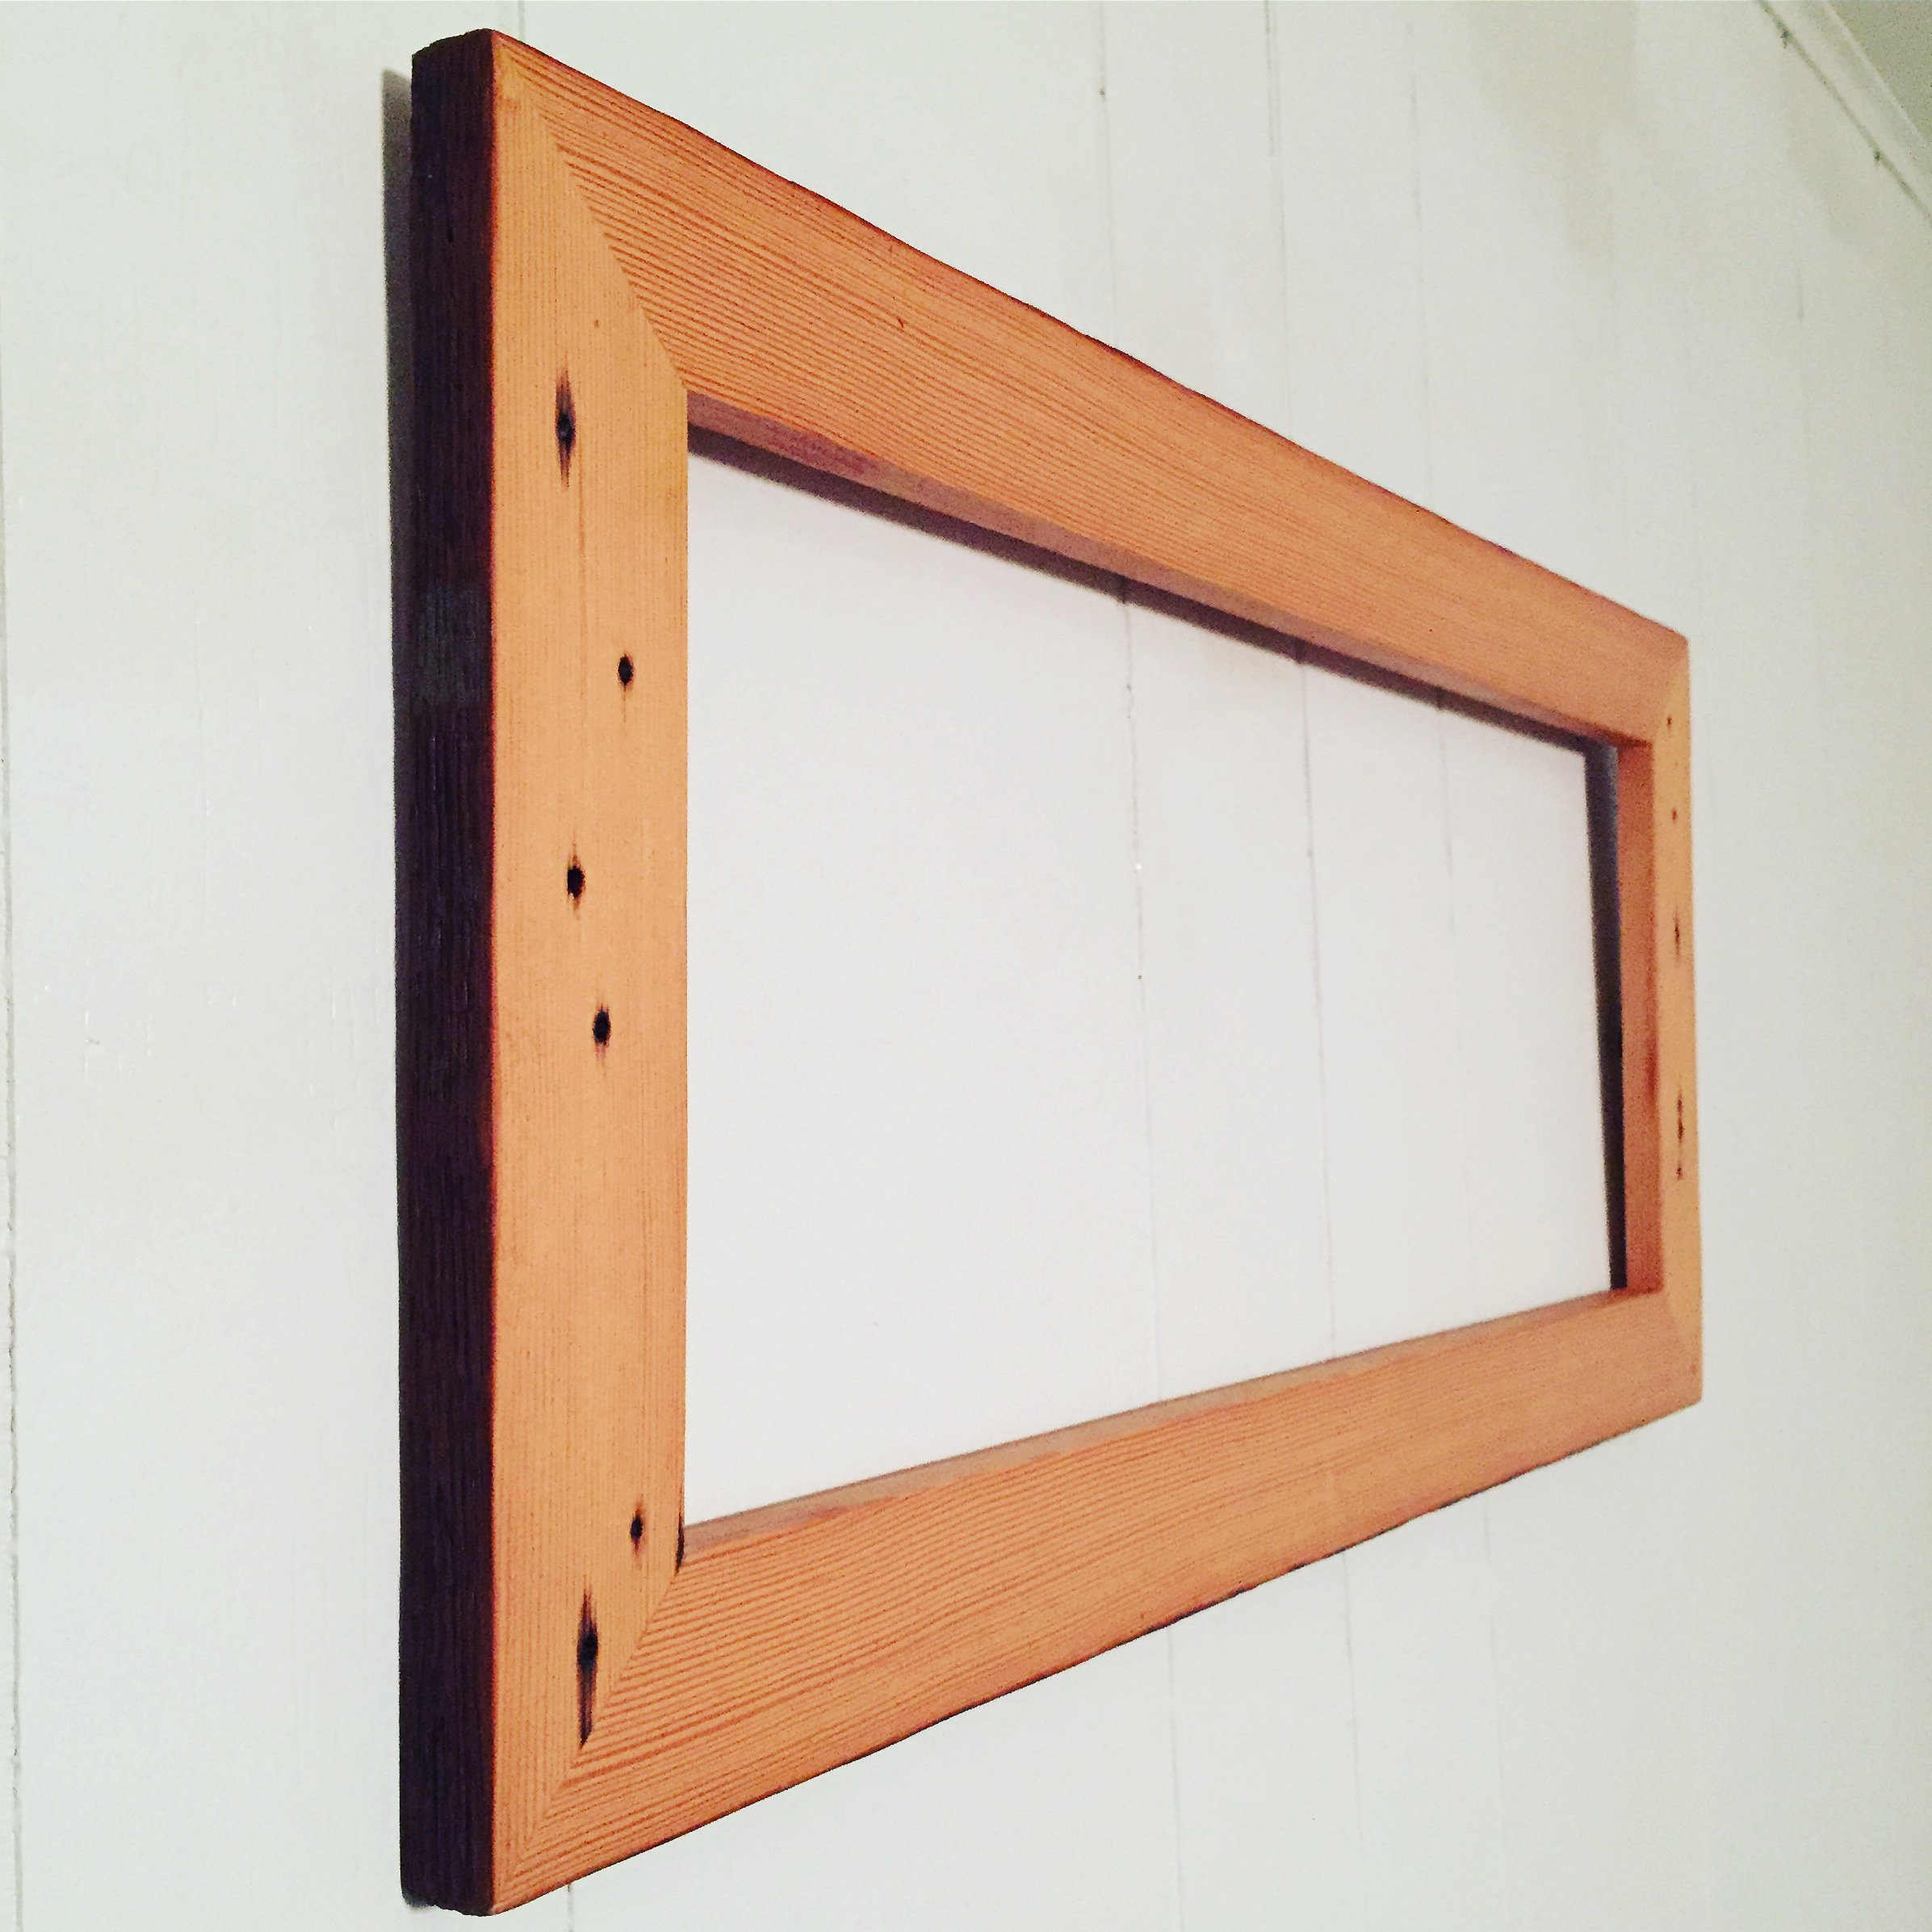 The regrainery reclaimed woodworking and furniture large large picture frames 11x14 jeuxipadfo Image collections